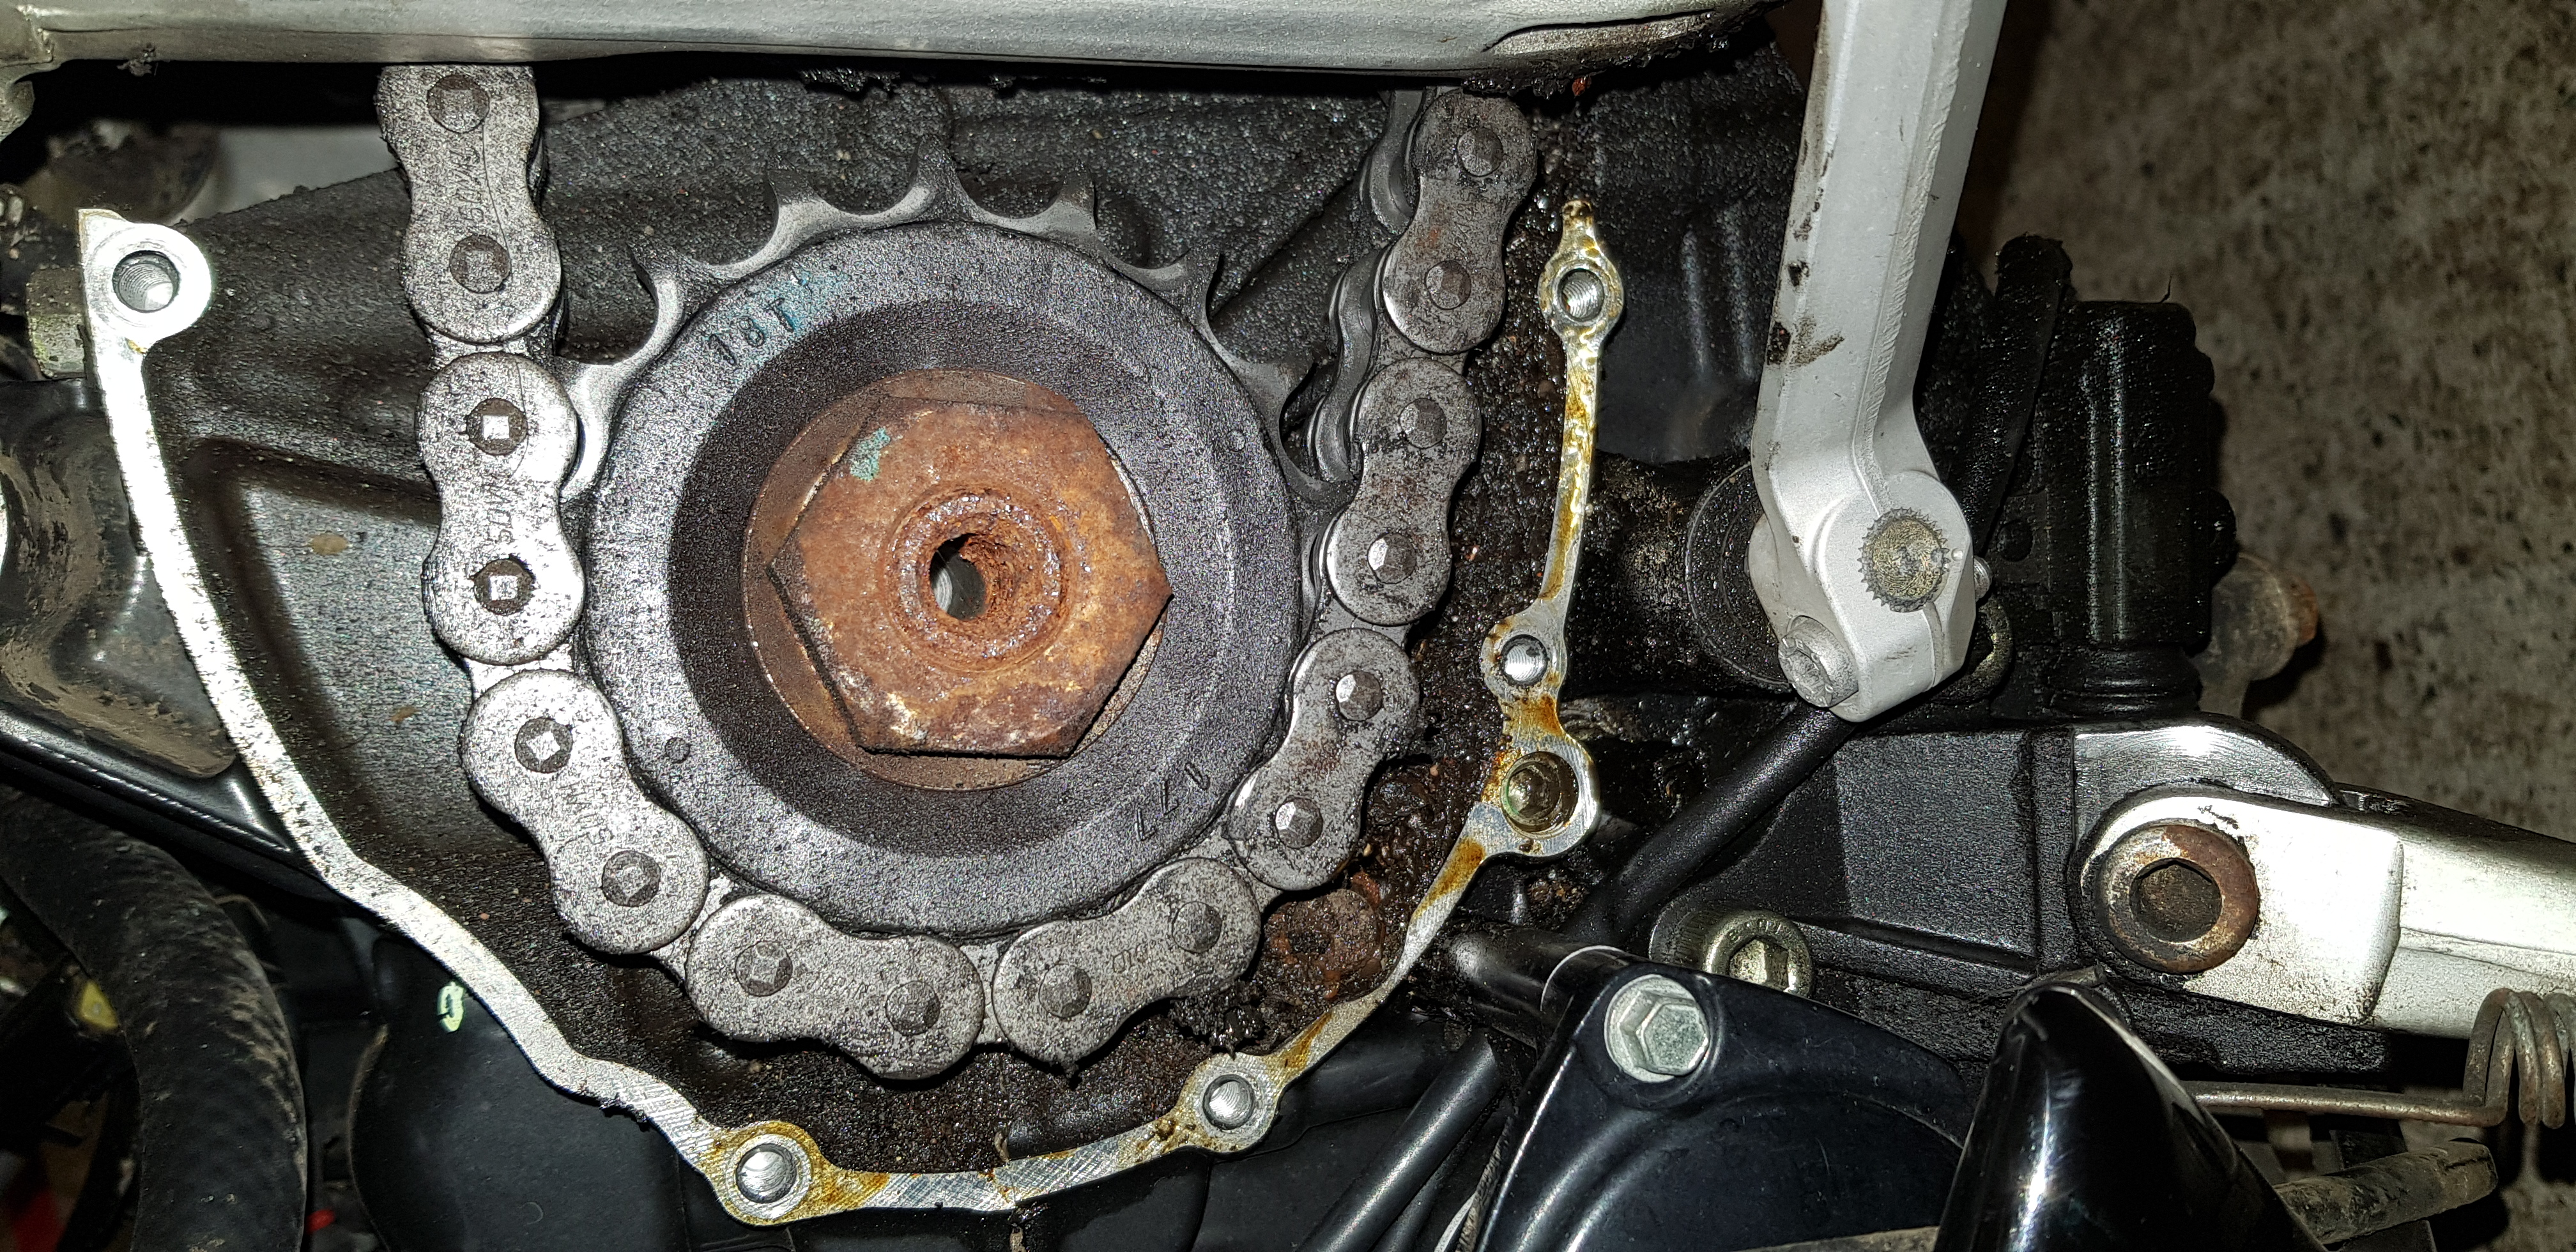 Front sprocket oil leak - 2002 955i - Triumph Forum: Triumph Rat